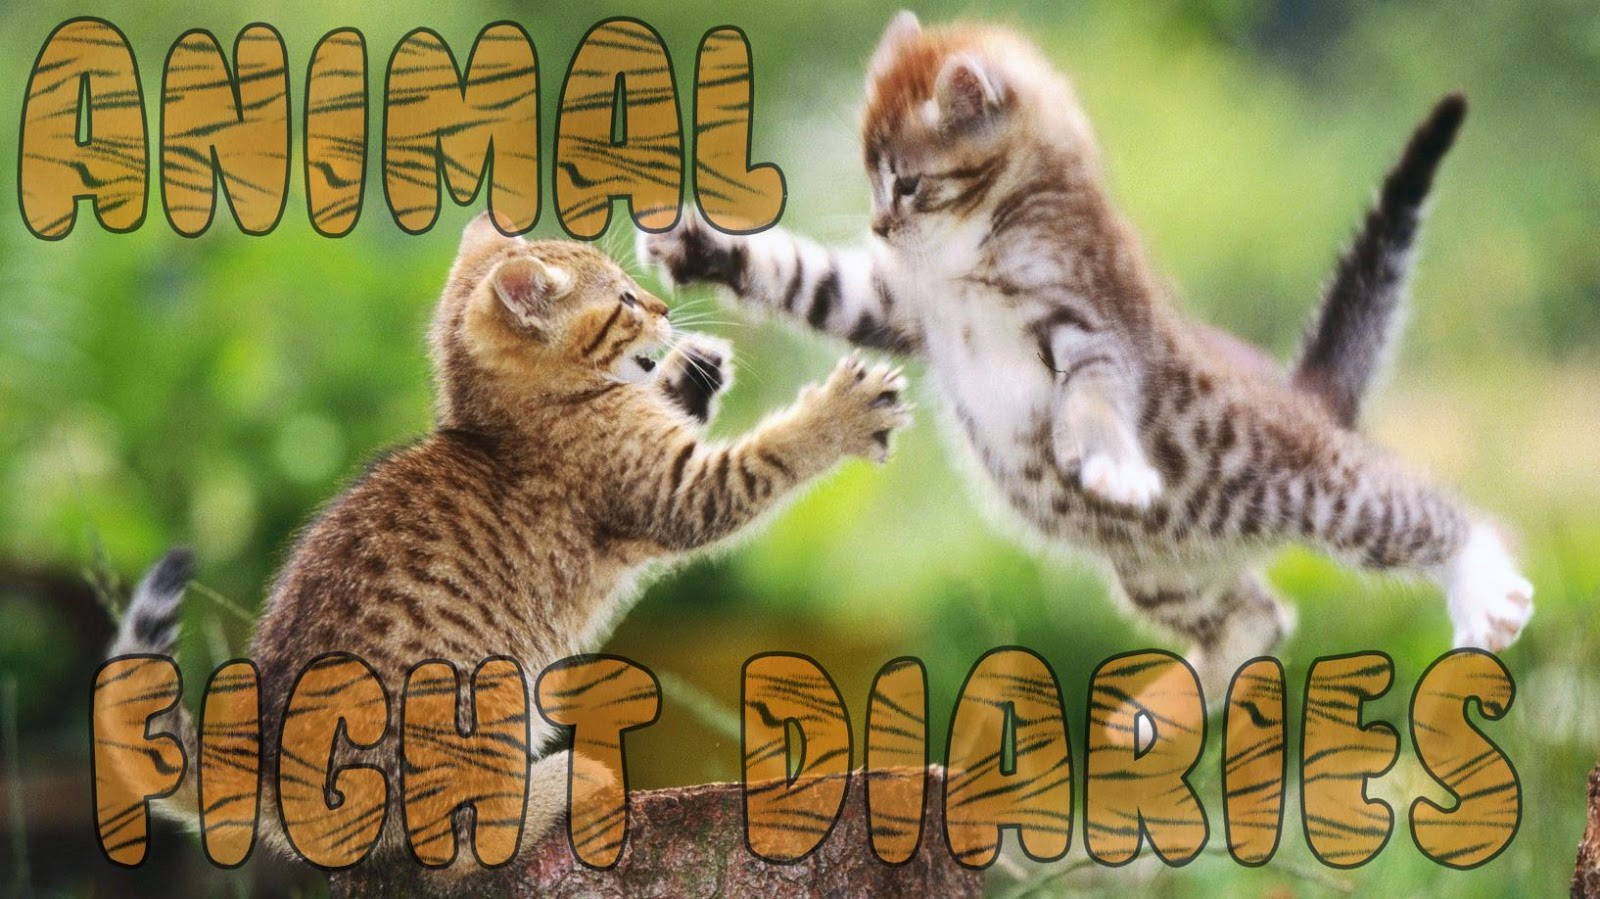 The Onion's Animal Fight Diaries